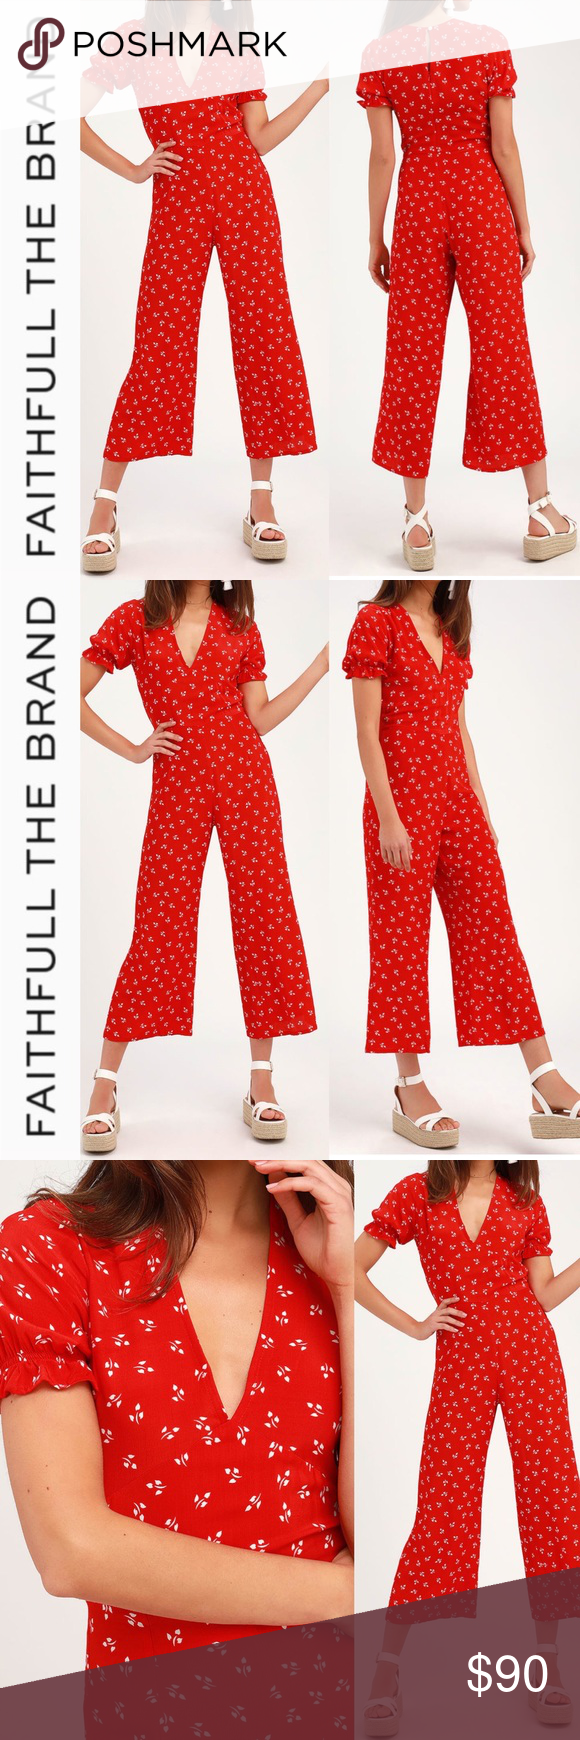 388bb59a2378 Faithfull the Brand Red Print Jumpsuit The Faithfull the Brand Mallory Red  Print Short Sleeve